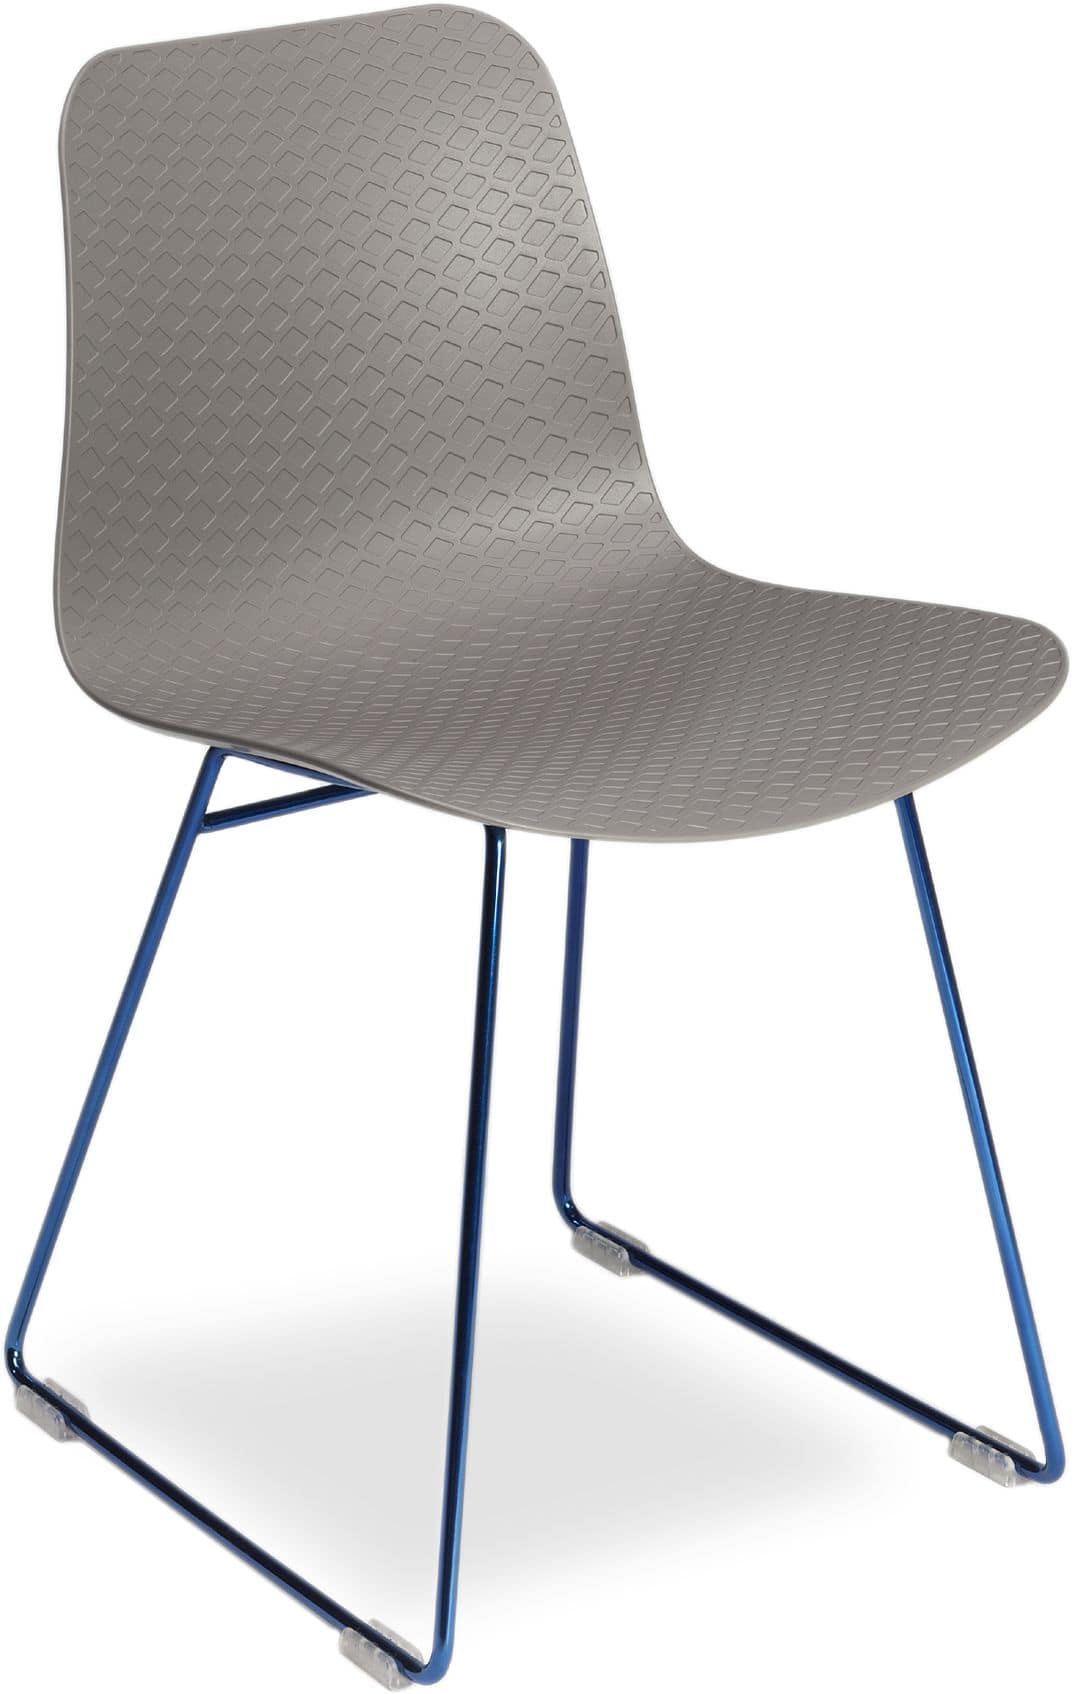 Ordinaire Dama, Metal Chair With Polypropylene Shell